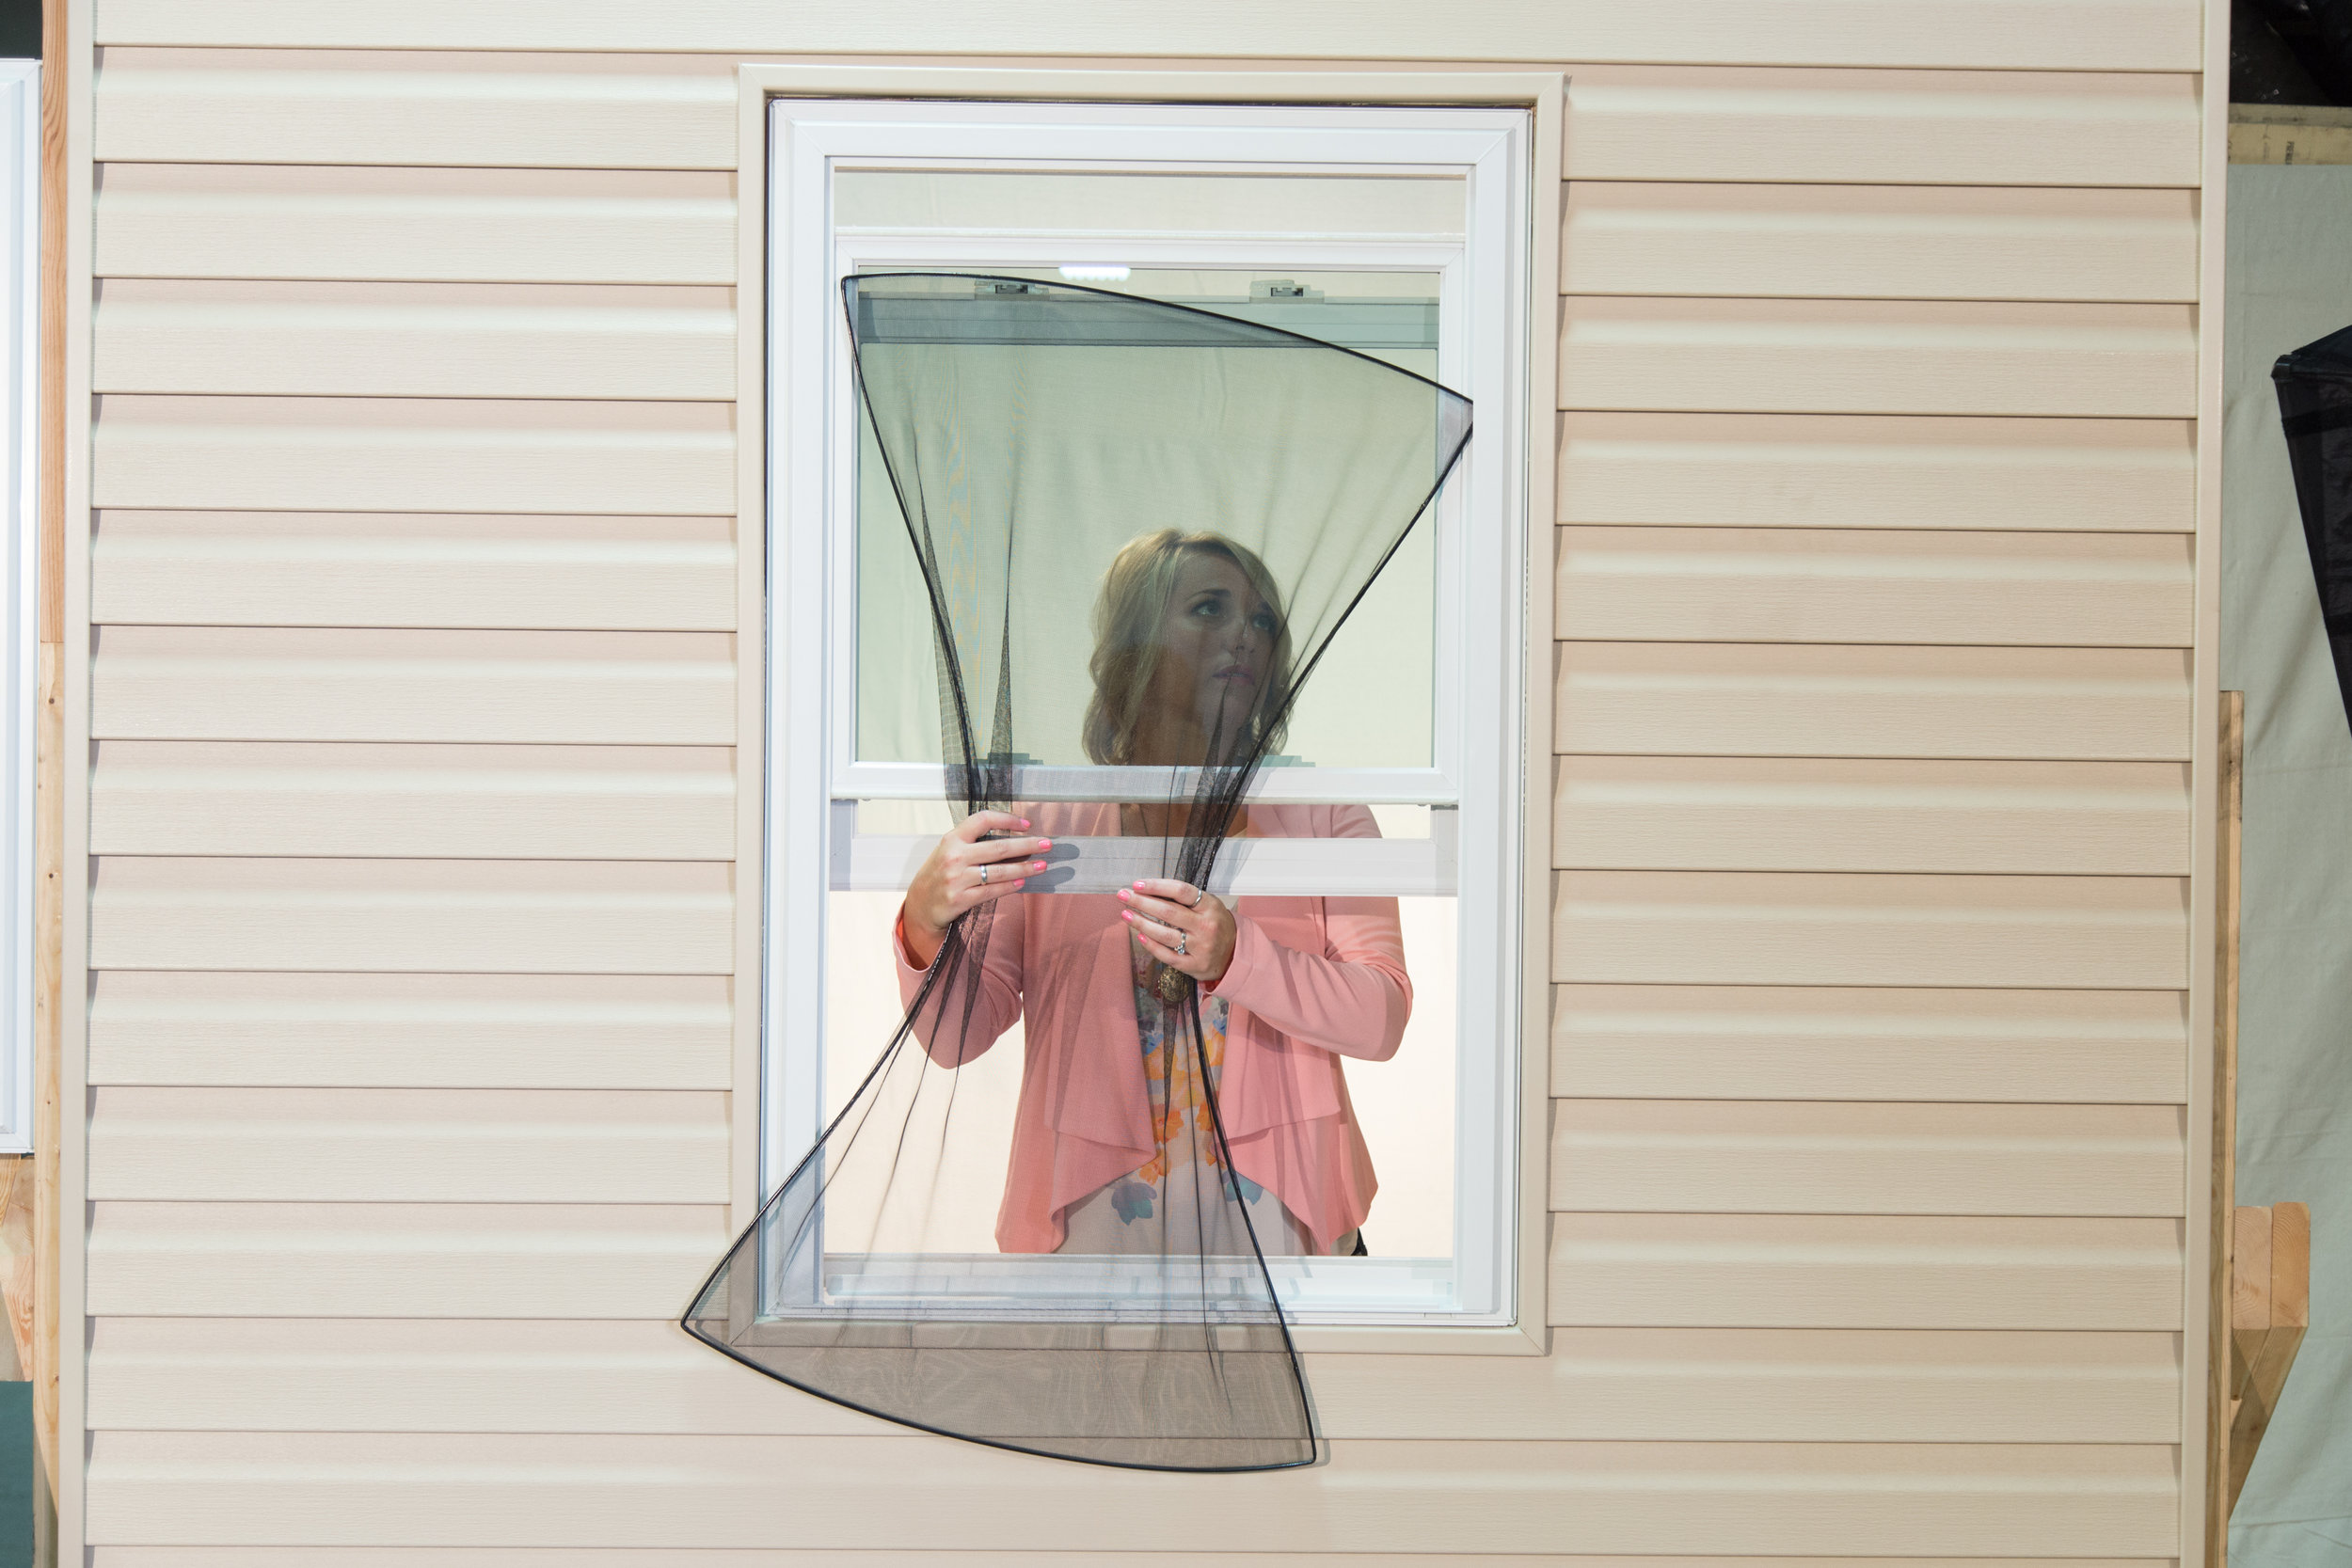 Wallside Windows uses FlexScreen, which is easy to bend, making it simple to install and remove.